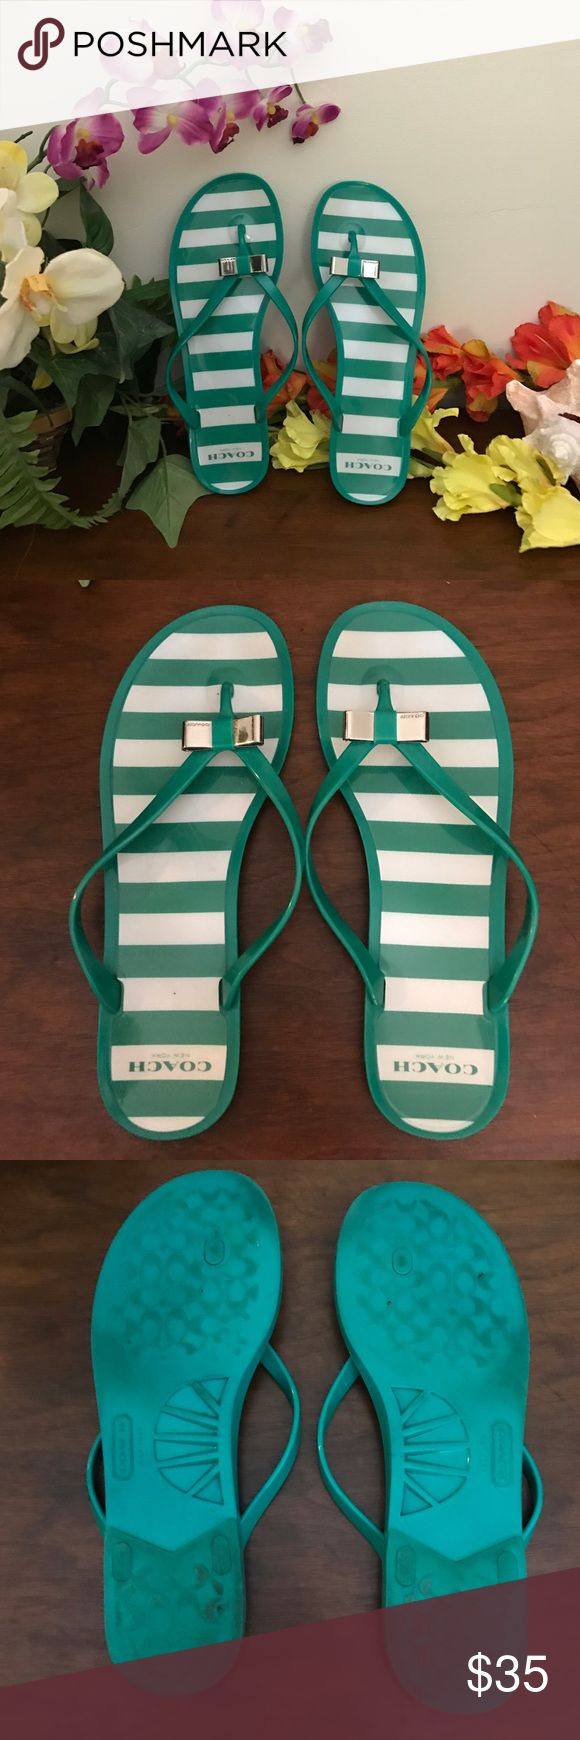 """Landon Jelly Coach Sandals⚡️ Excellent used condition coach flip flops. Size 9. Wear is seen on bottom but that can easily be washed. Runs slightly small. From the coach website"""" This chic little jelly thong has beach style wrapped up, with a pretty bow cast in gleaming polished metal. Vivid stripes add charm to the footbed."""" Made of PVC with a rubber bottom. Retails for 85$. Bundle for 30% off! Priced to sell quickly! Coach Shoes Sandals"""